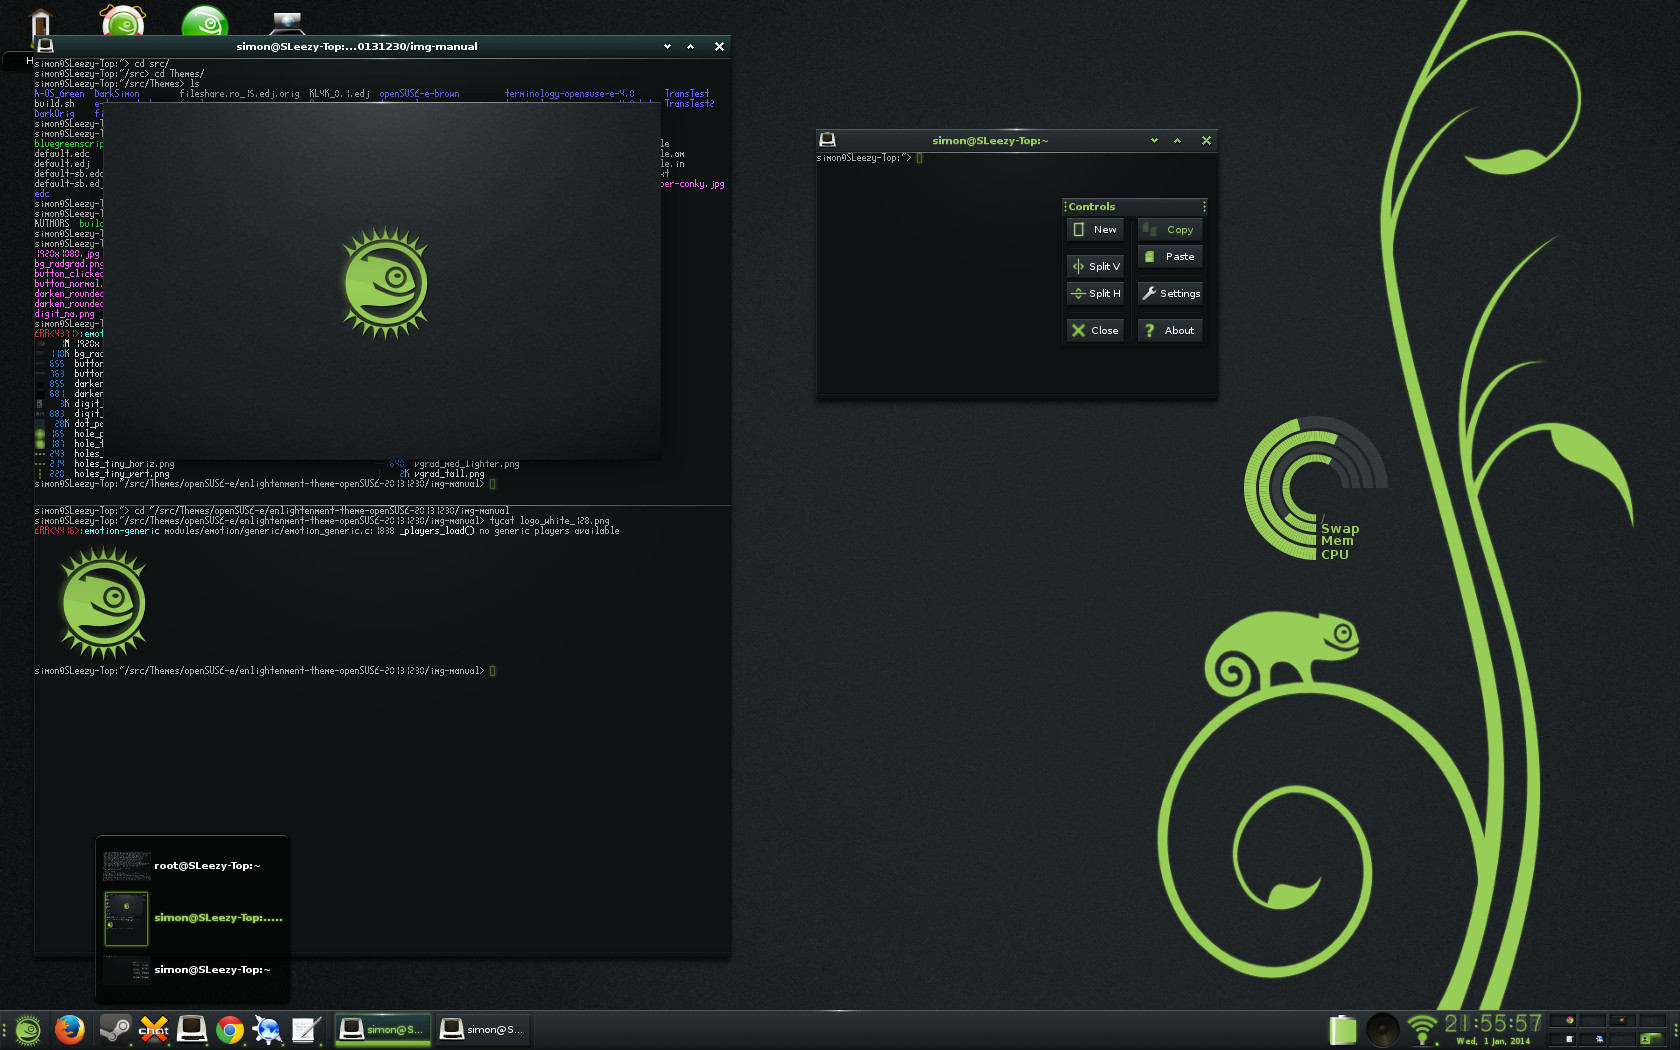 Terminology 0.4.0 Features on openSUSE